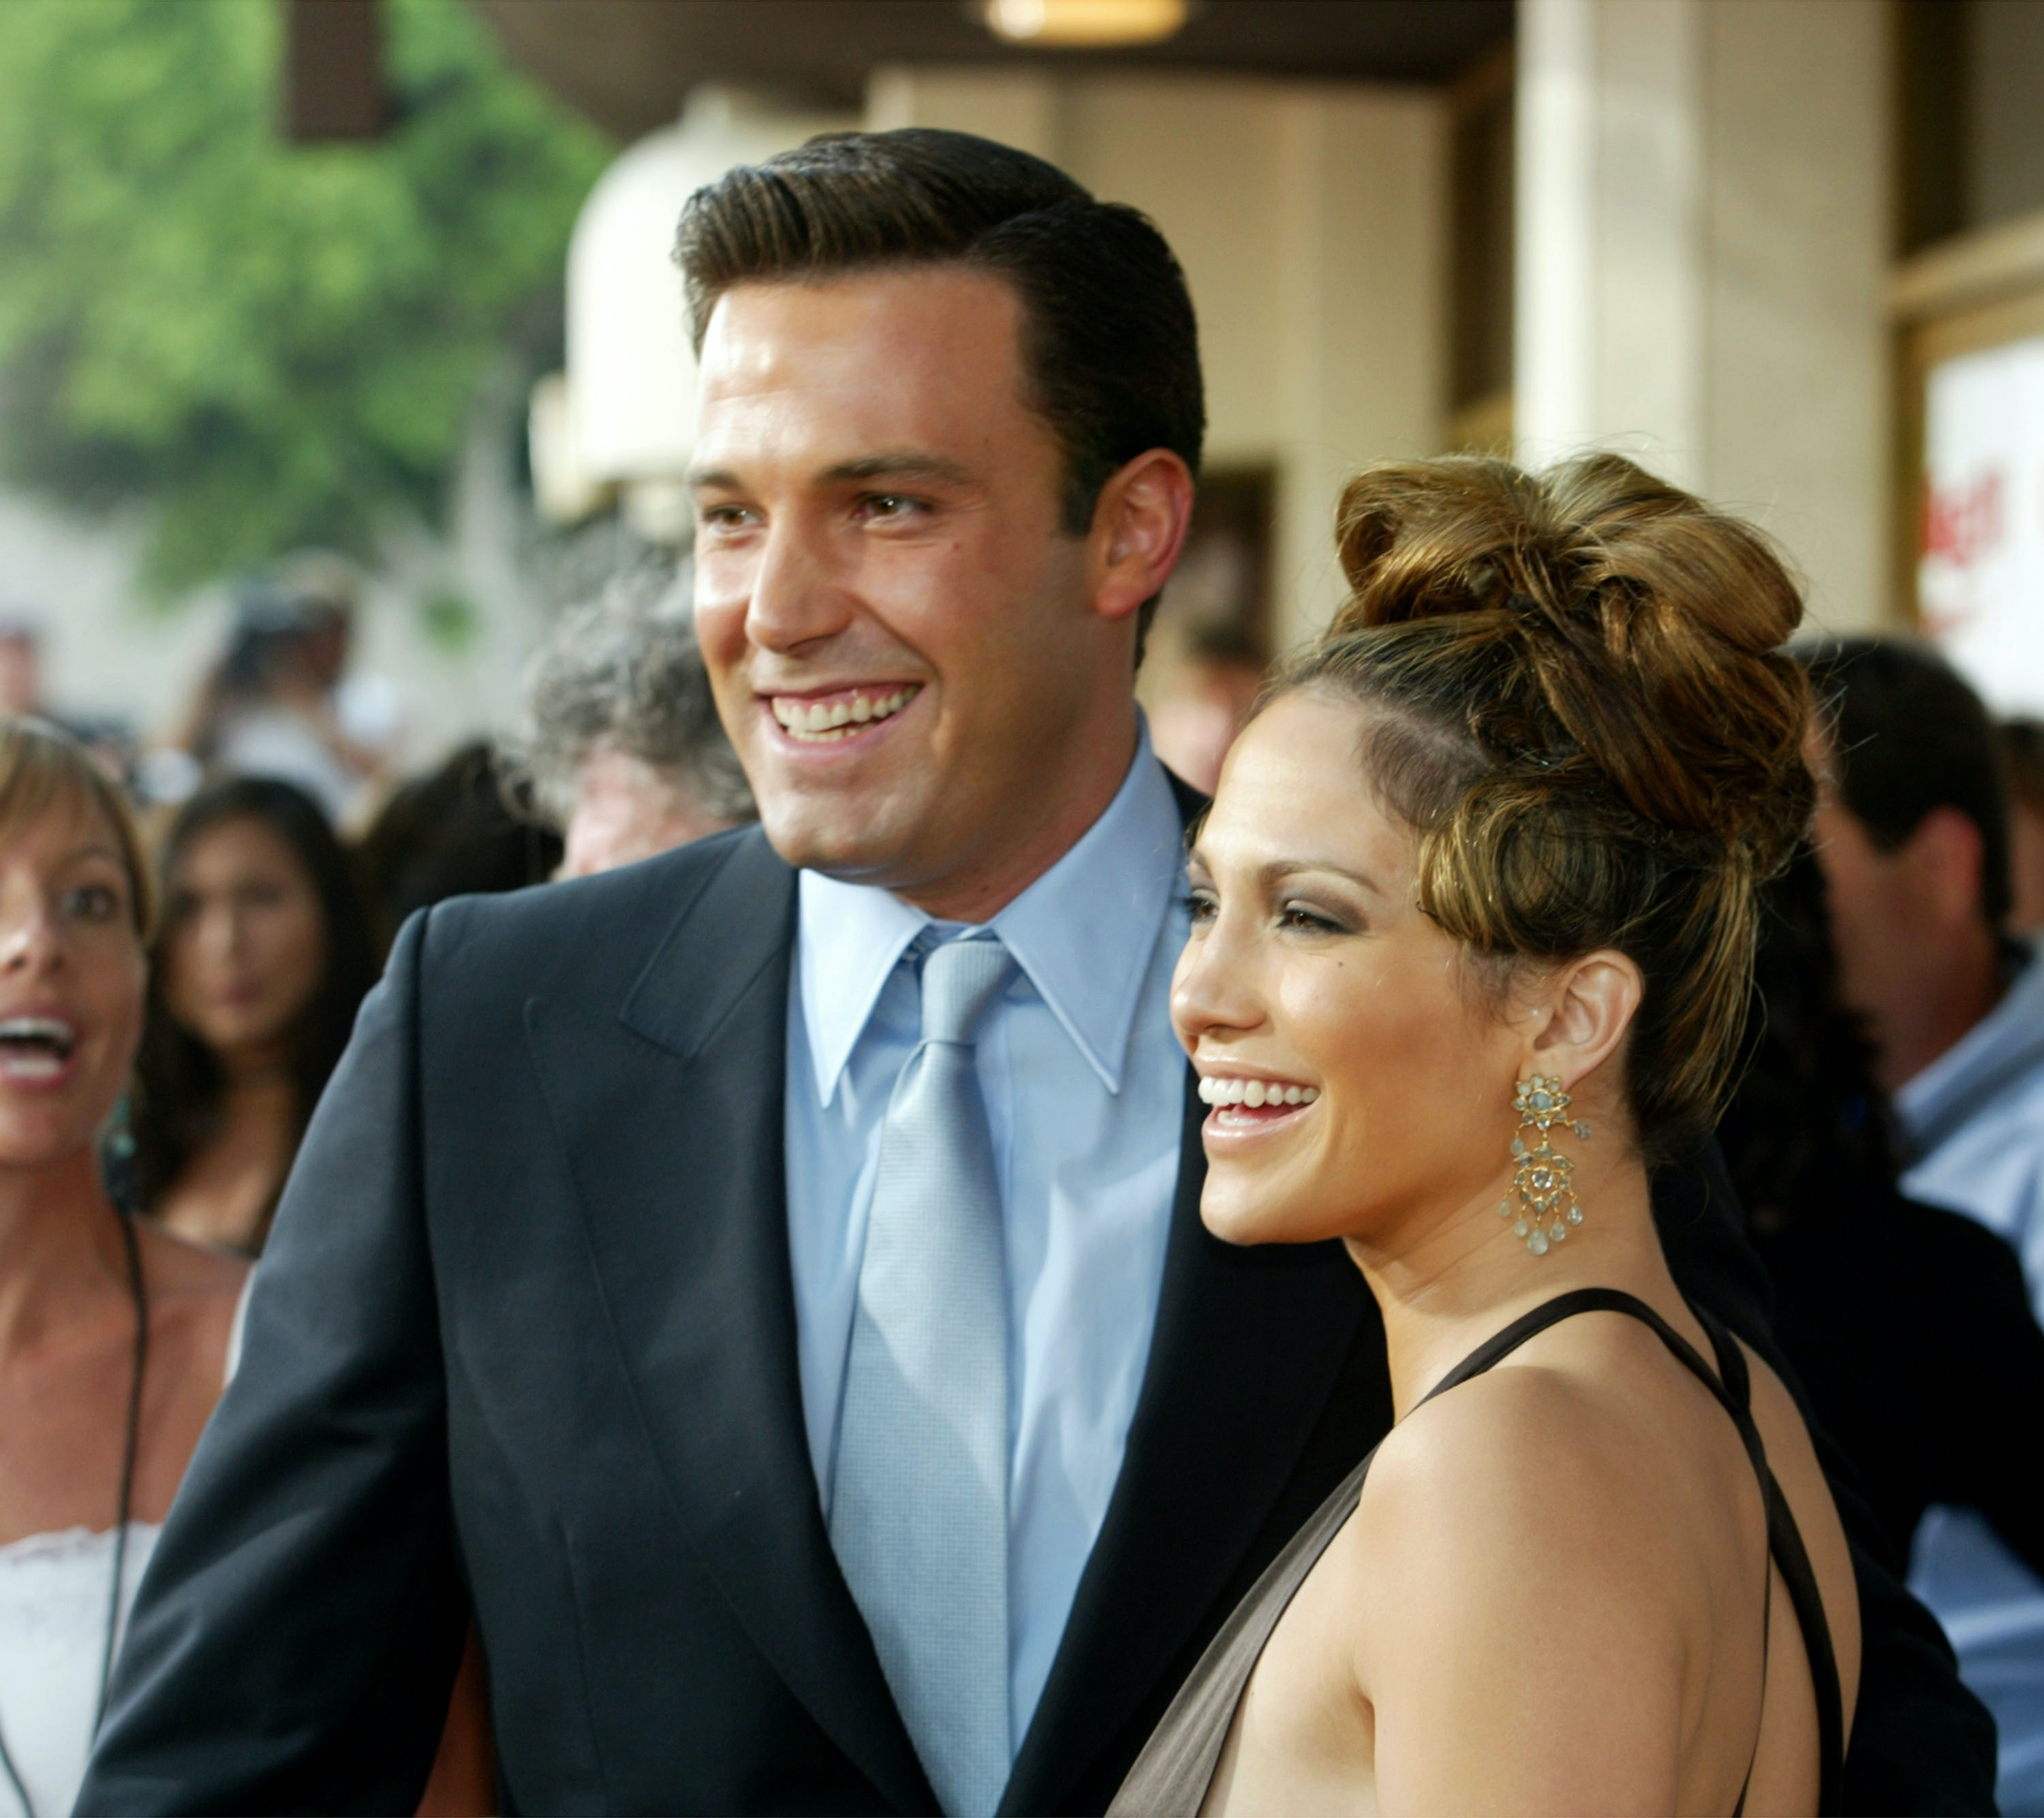 This Reported Update On Jennifer Lopez & Ben Affleck's Relationship Is Exciting